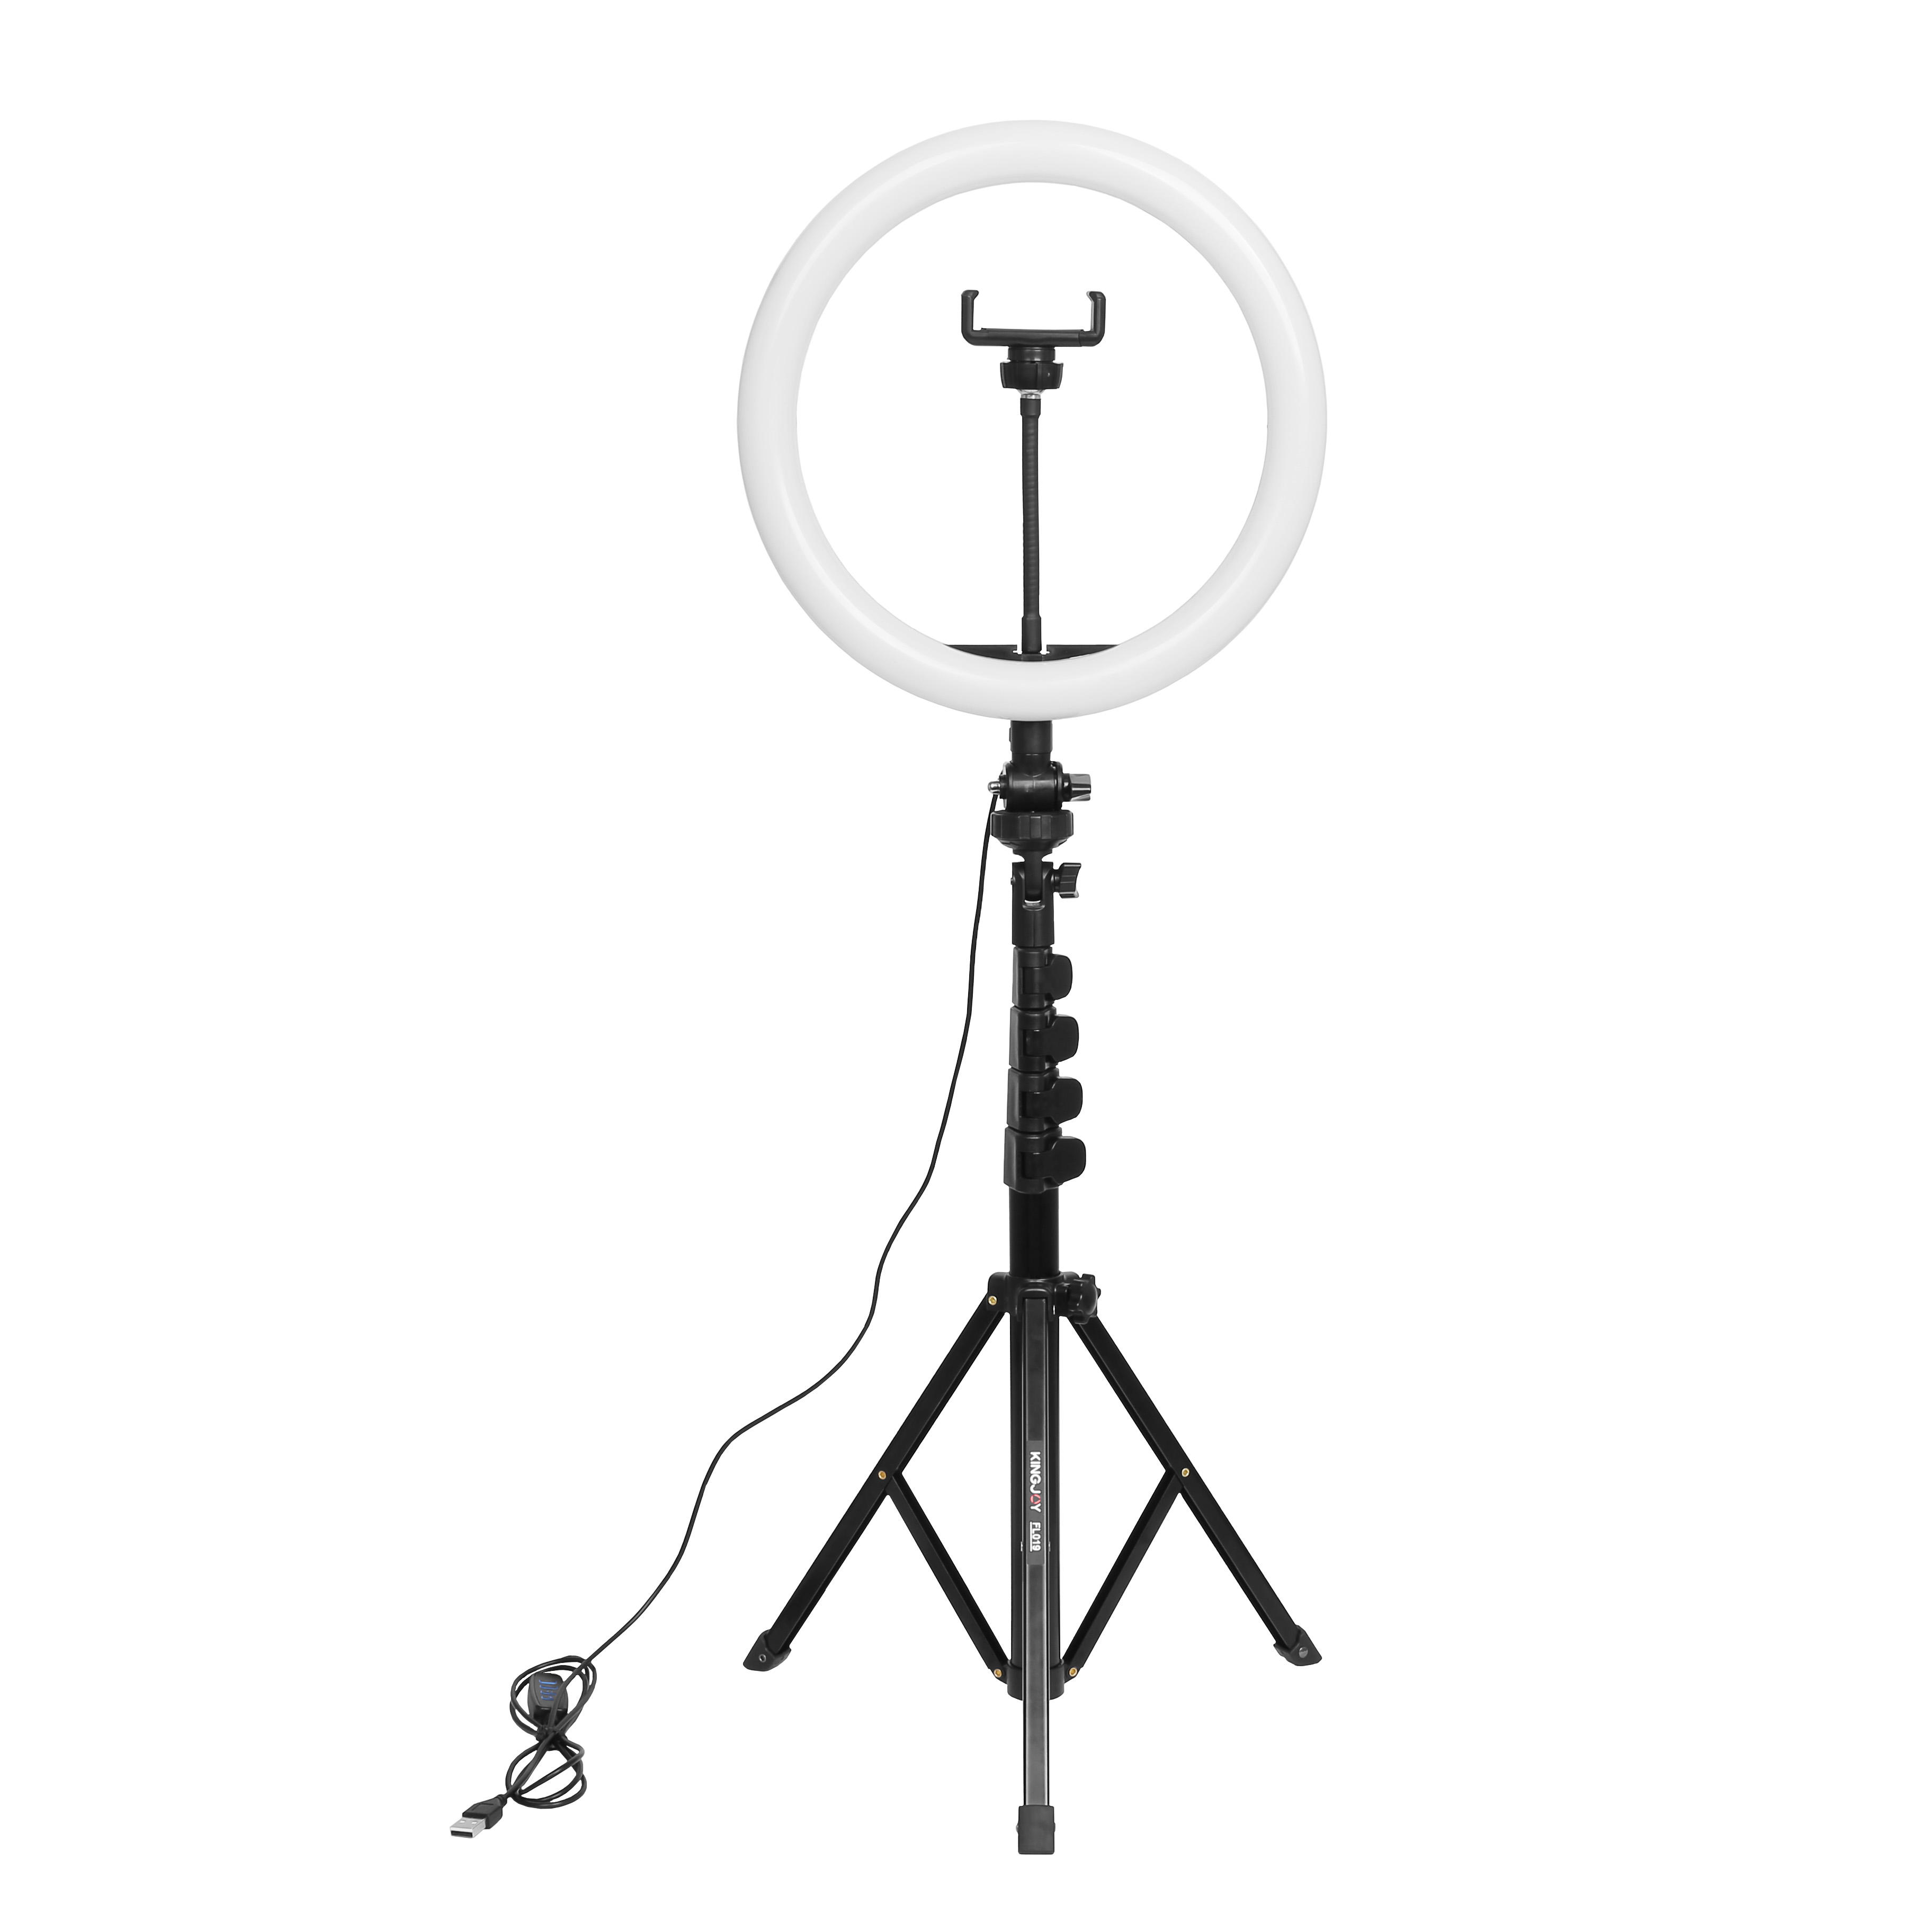 AFI 11 Inch Universal Plastic Beauty Ring Fill Light with Tripod Stand for Phone Shooting, Live streaming and Make Up